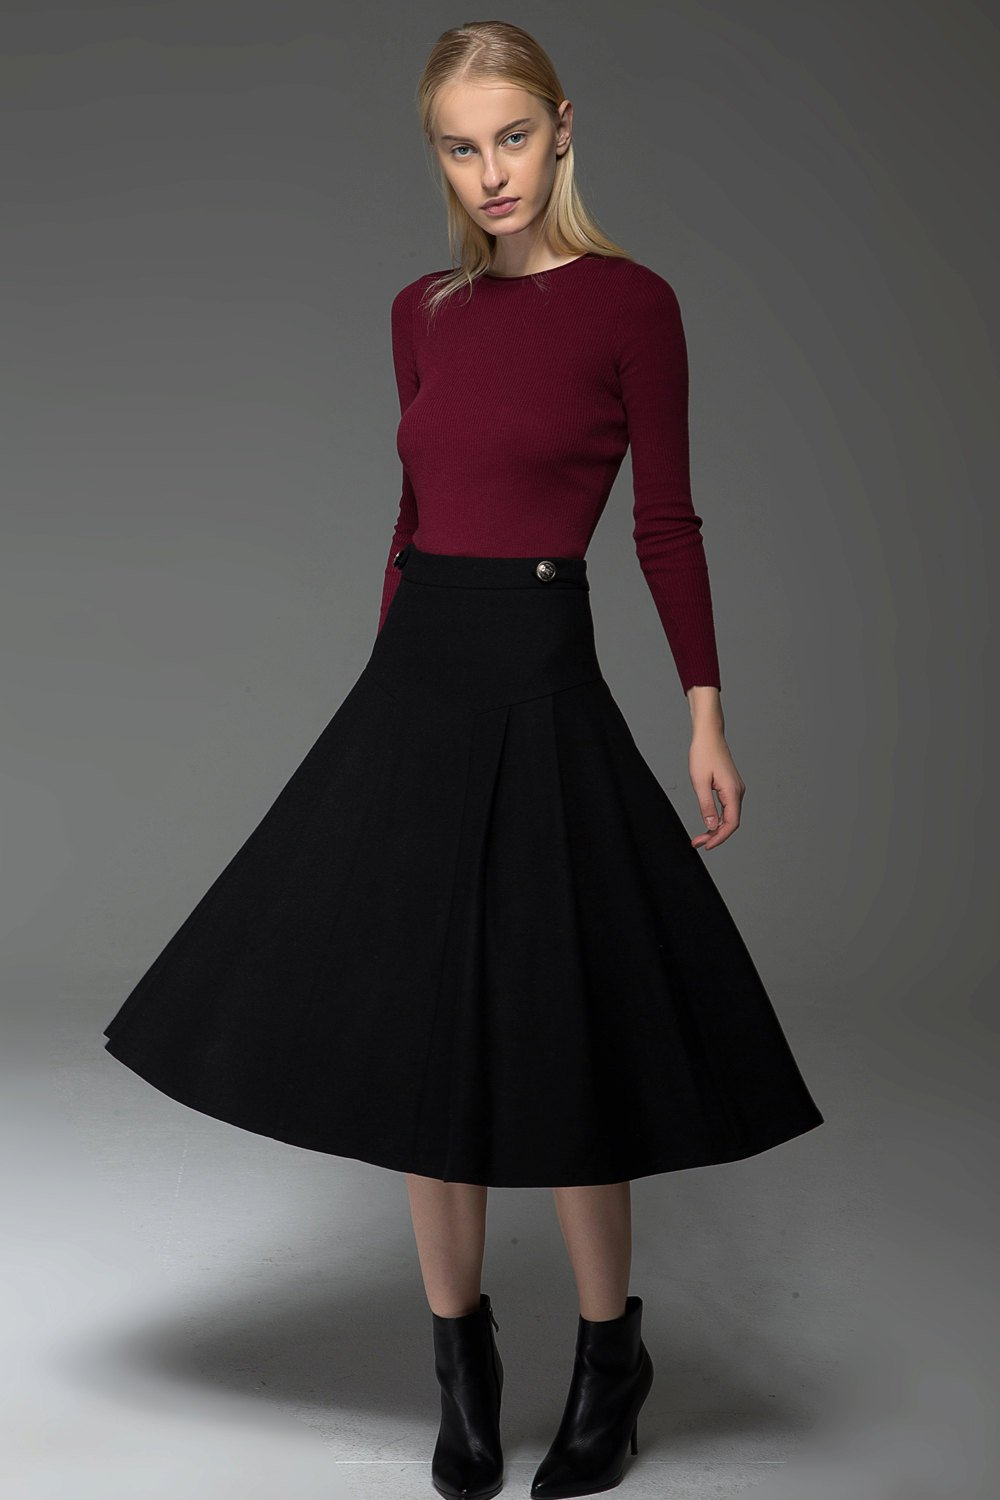 Pleated skirt, black skirt, womens skirt, midi skirt, winter skirt, flare skirt, autumn skirt, wool skirt, classic skirt C771